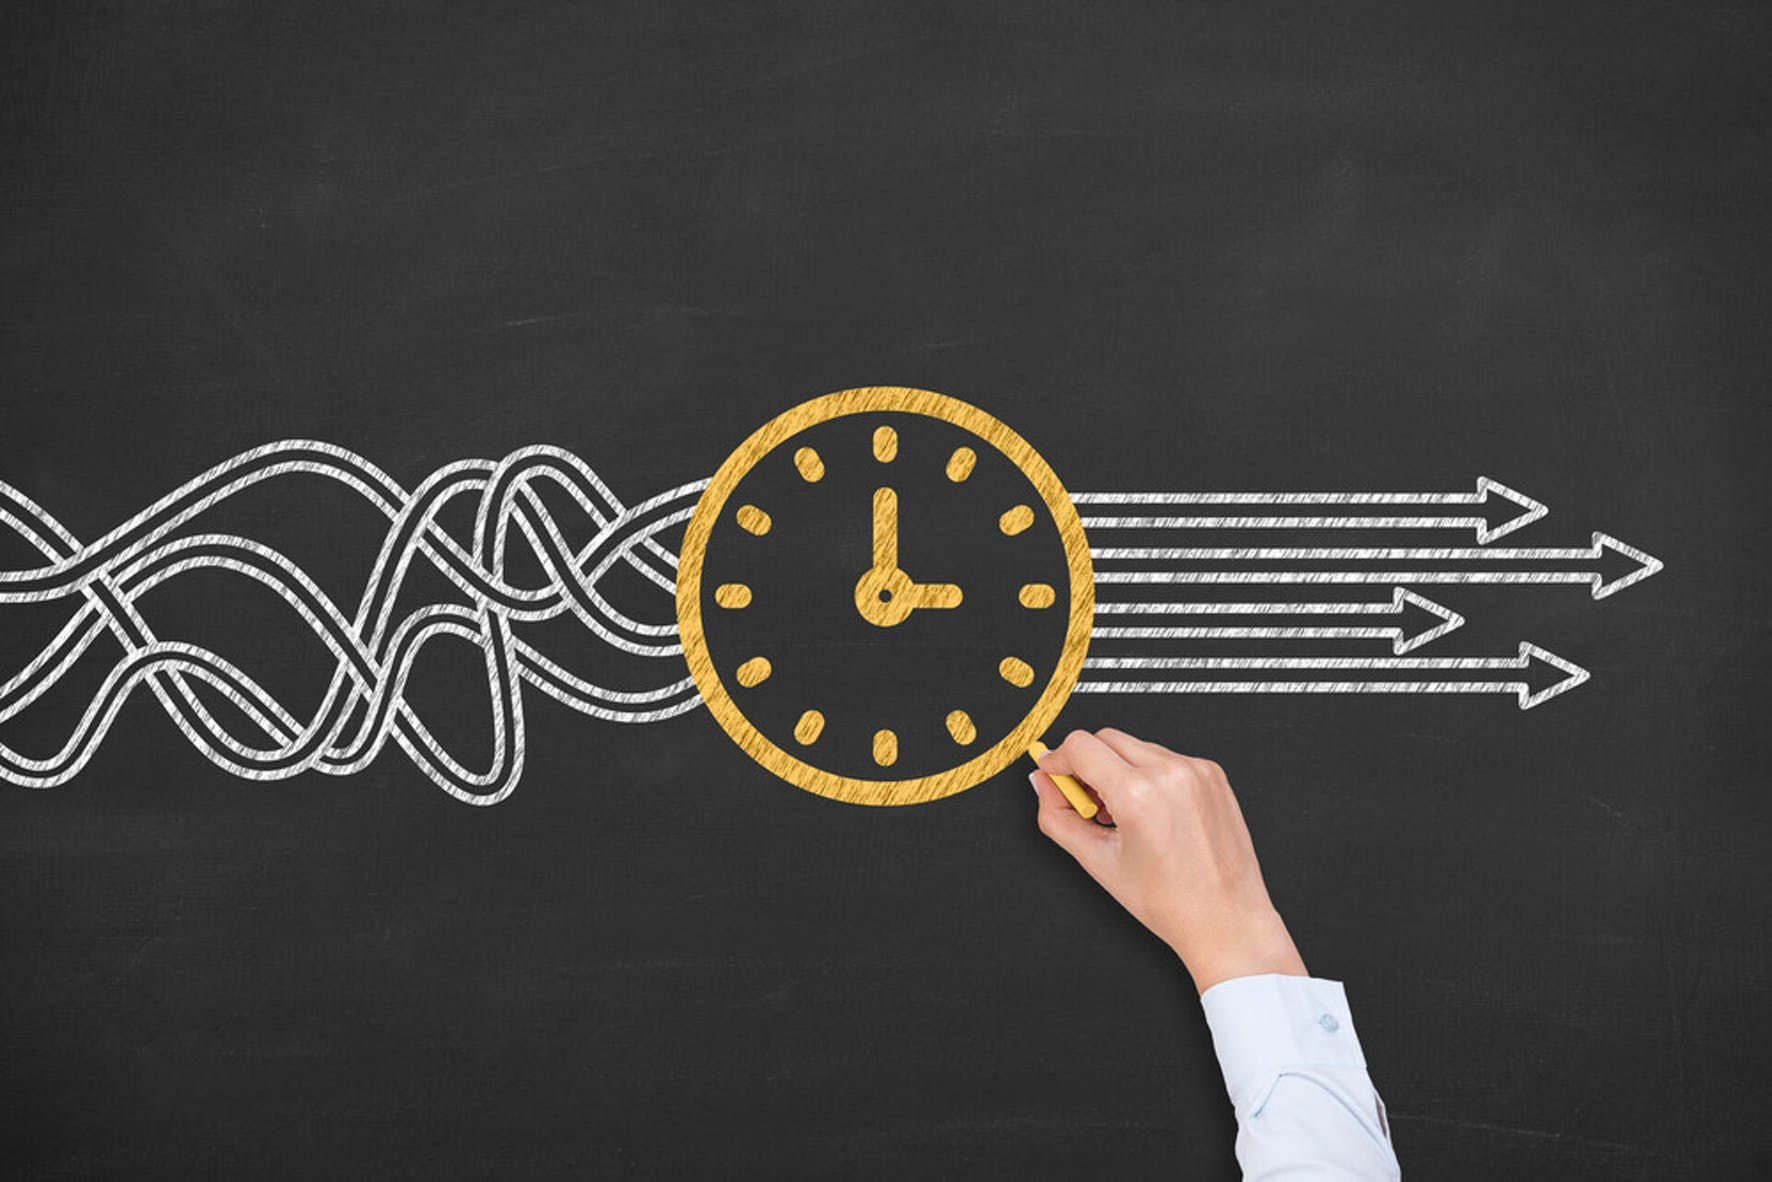 Drawing a clock to demonstrate the value of time management